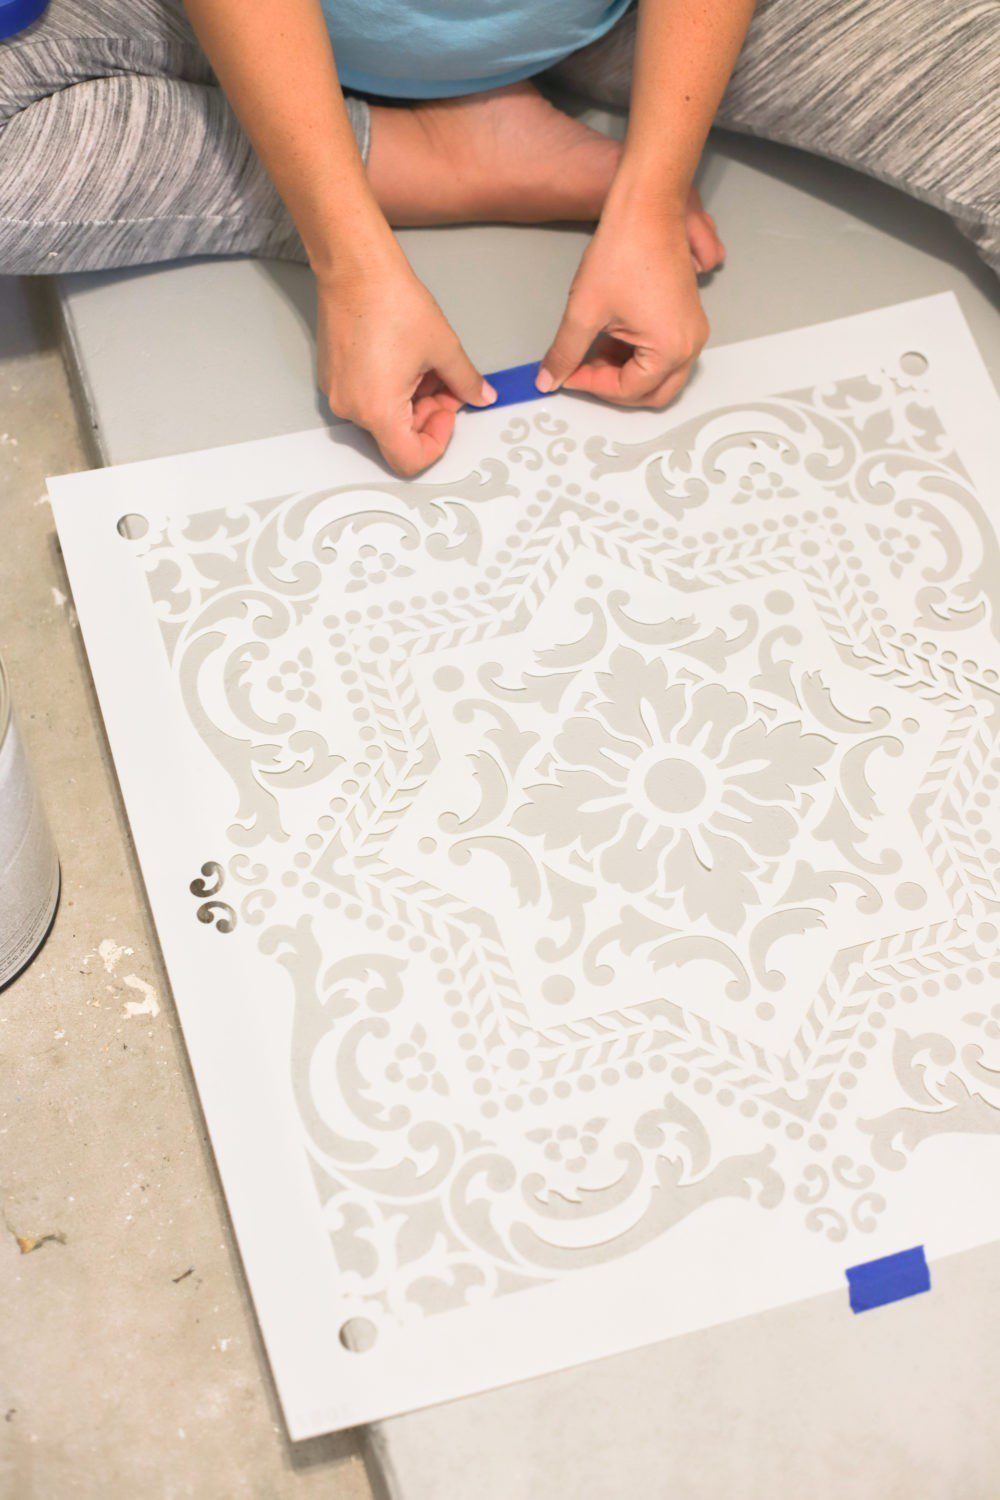 Laundry Room DIY: How to Paint a Cement Floor with Stencils | Laundry Room DIY: How to Paint a Cement Floor with Stencils by popular home decor blog, Fresh Mommy: image of a floor stencil being taped down.